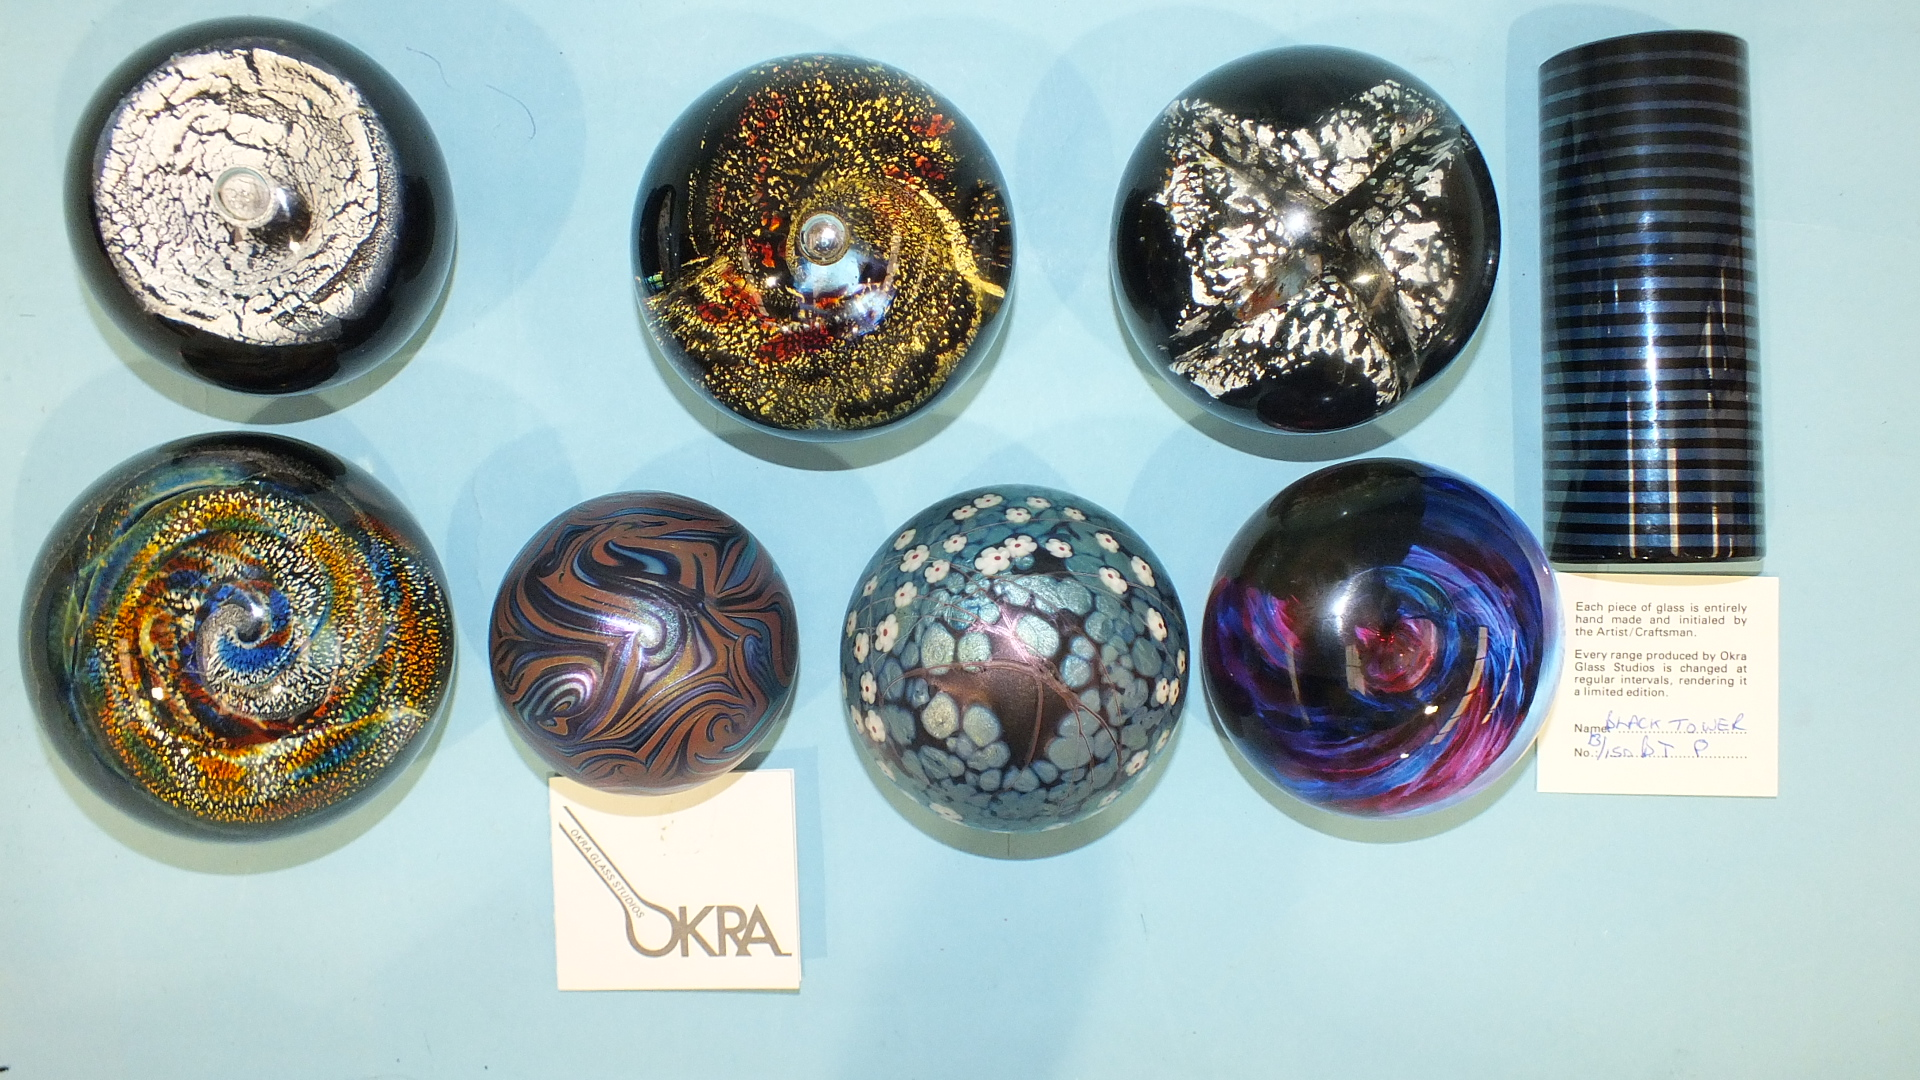 Lot 250 - Three Okra Glass Studios paperweights, 'Black Tower' 13/150, 'Nebular' No.15 and one other floral